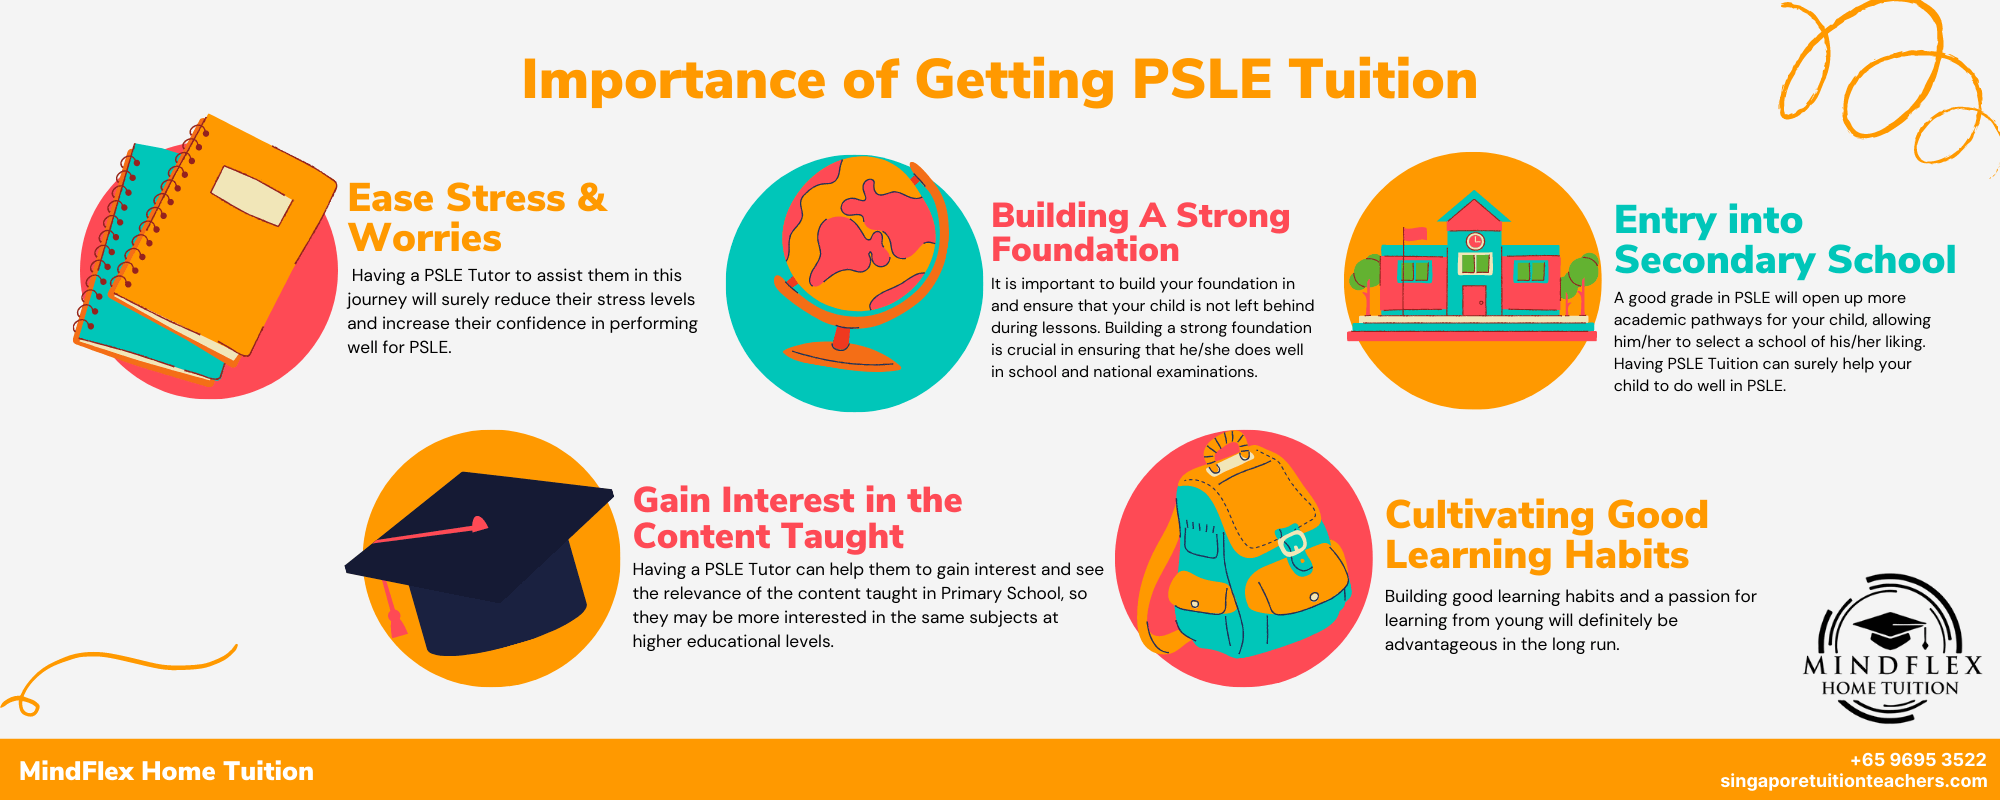 Infographic on Importance of PSLE Tuition